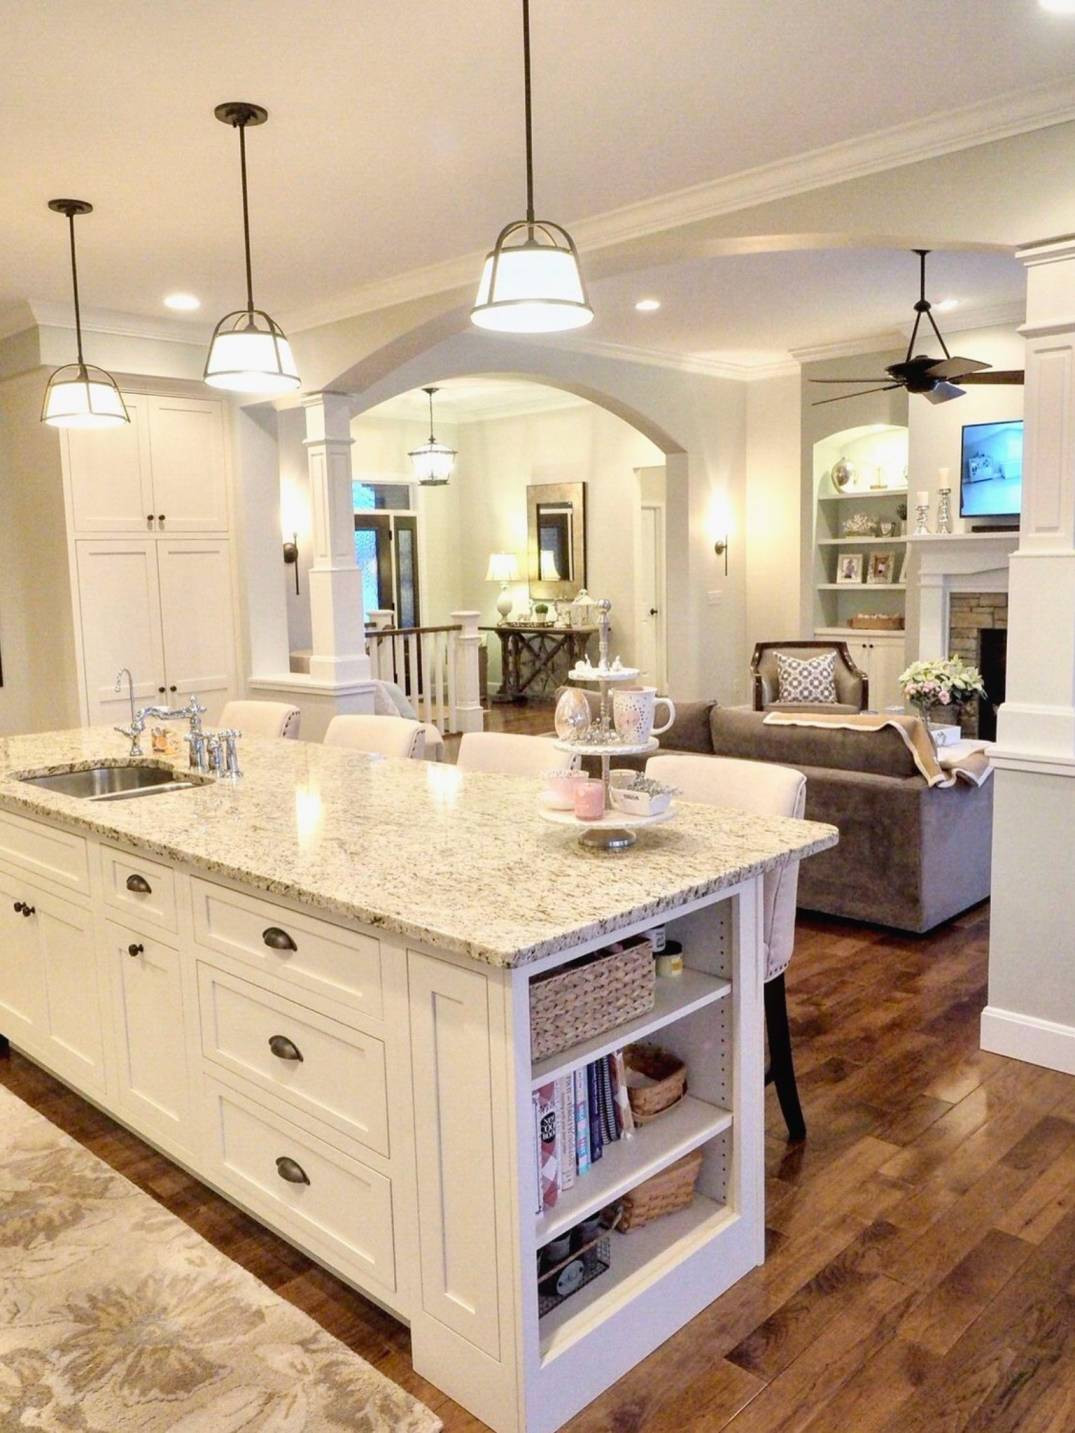 grey hardwood floors white cabinets of 15 elegant kitchen cupboard doors grey www princesofkingsroad com page with white kitchen with grey floor inspirational white glazed kitchen cabinets awesome s od double door refrigerator